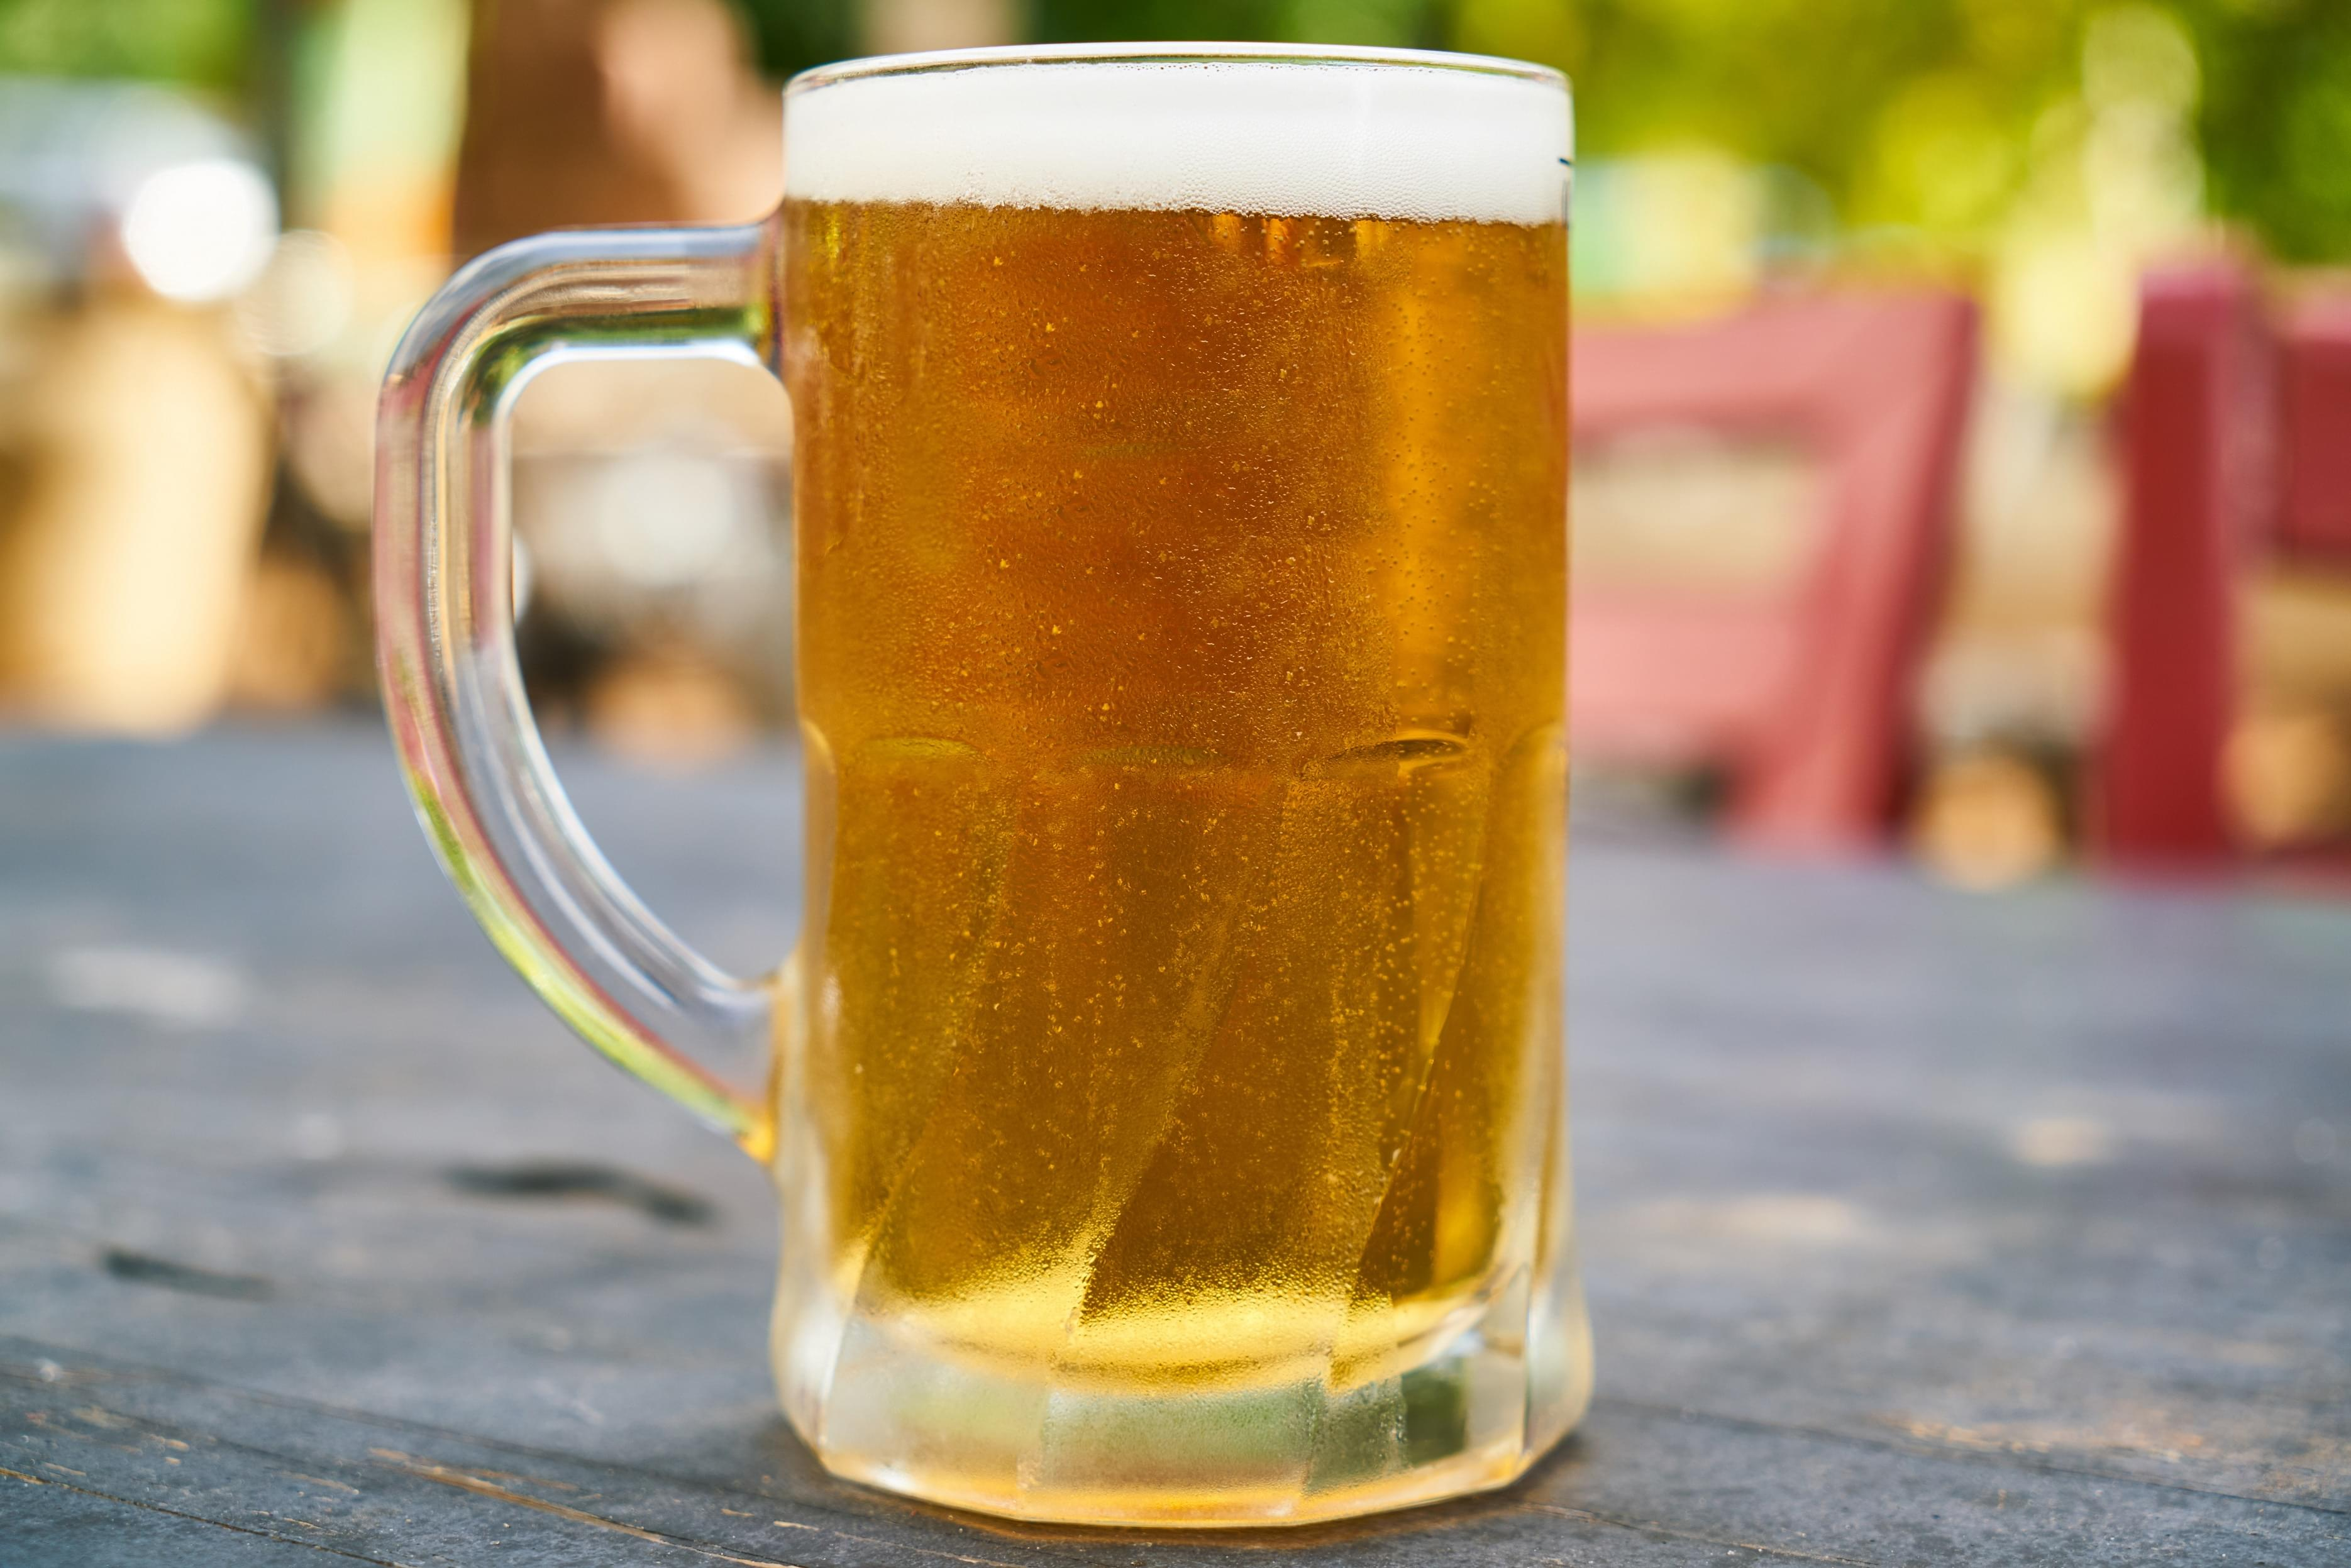 Free Beer from Natural Light in 2020!